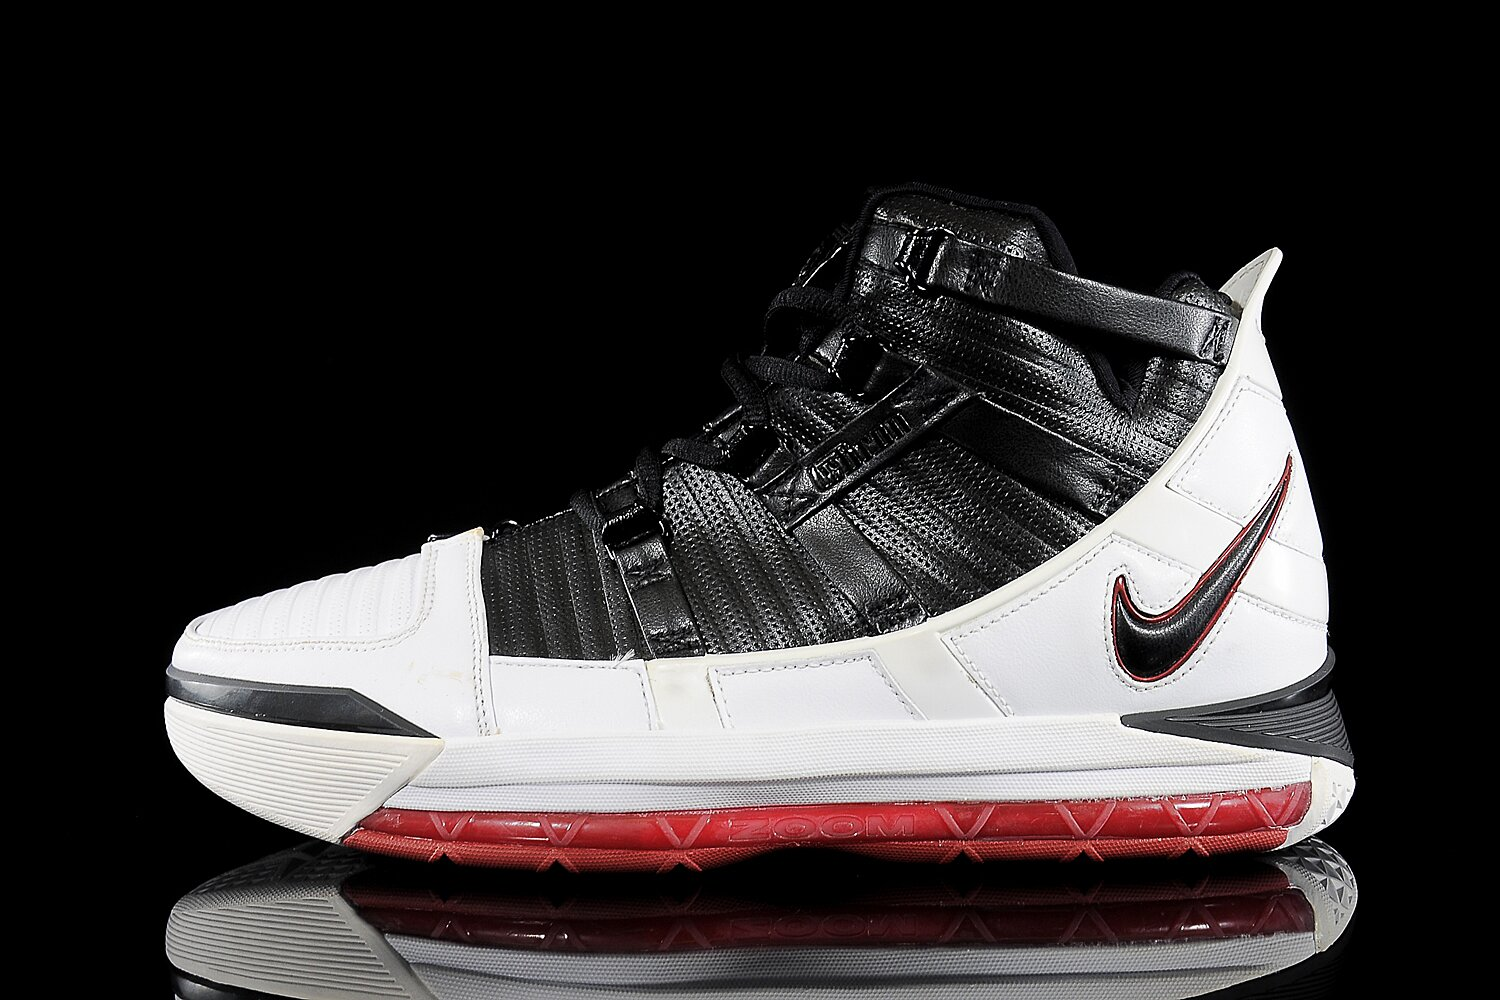 dc67245c458 LeBron James Signature Sneakers  Ranking the Best of the King